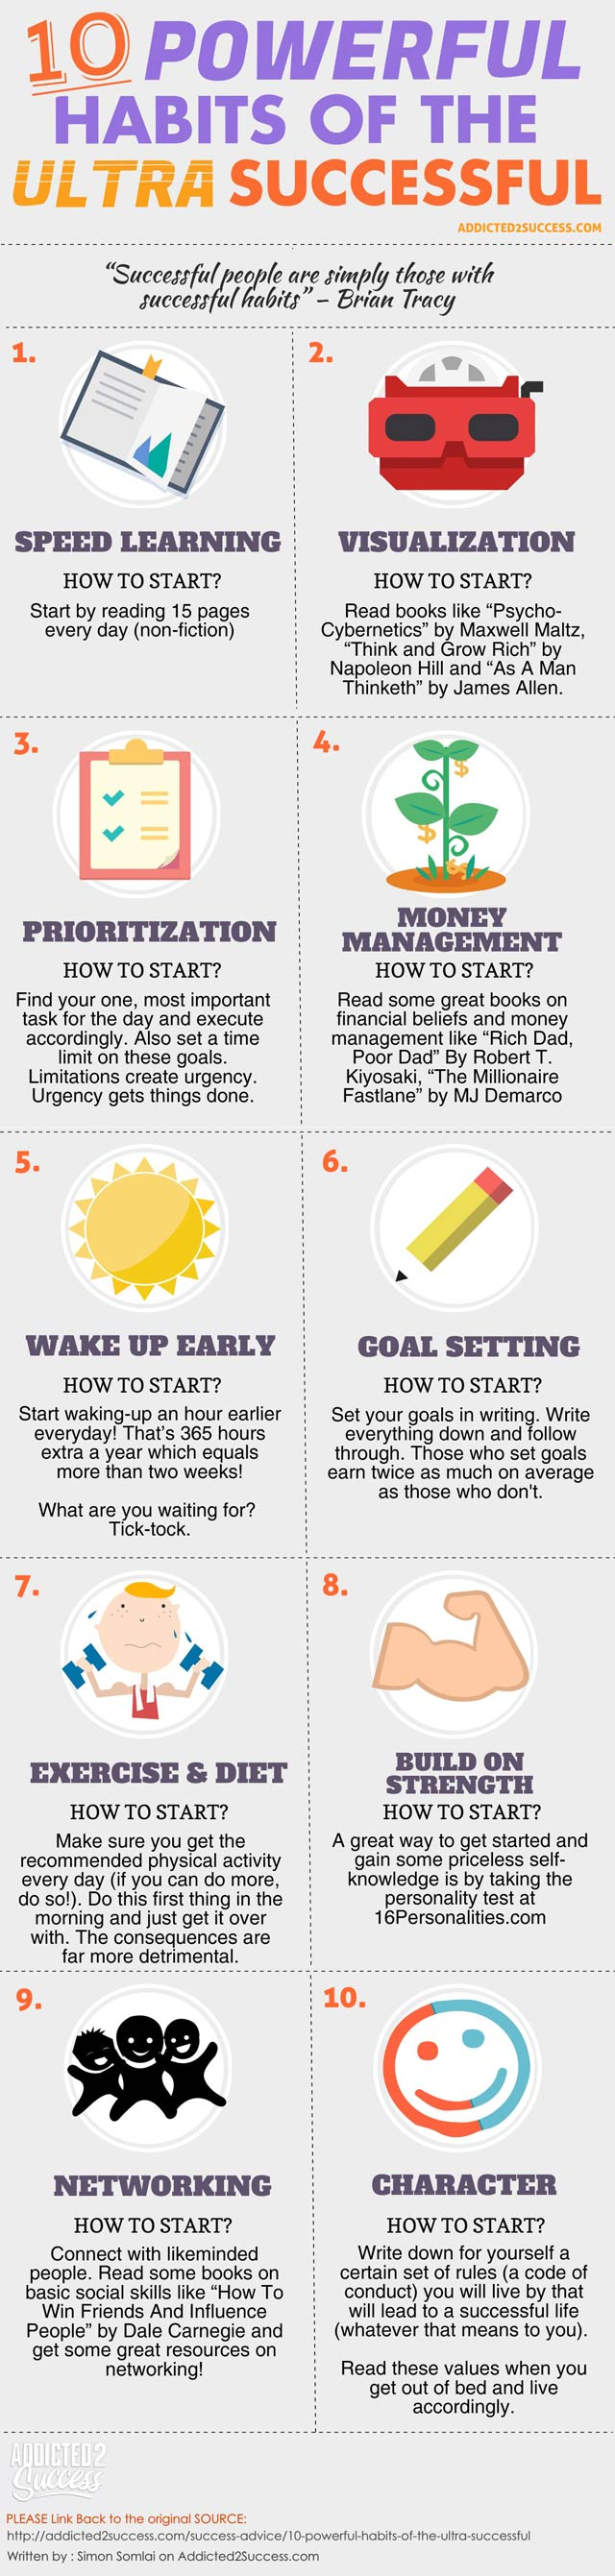 10 Things Successful People Do Differently